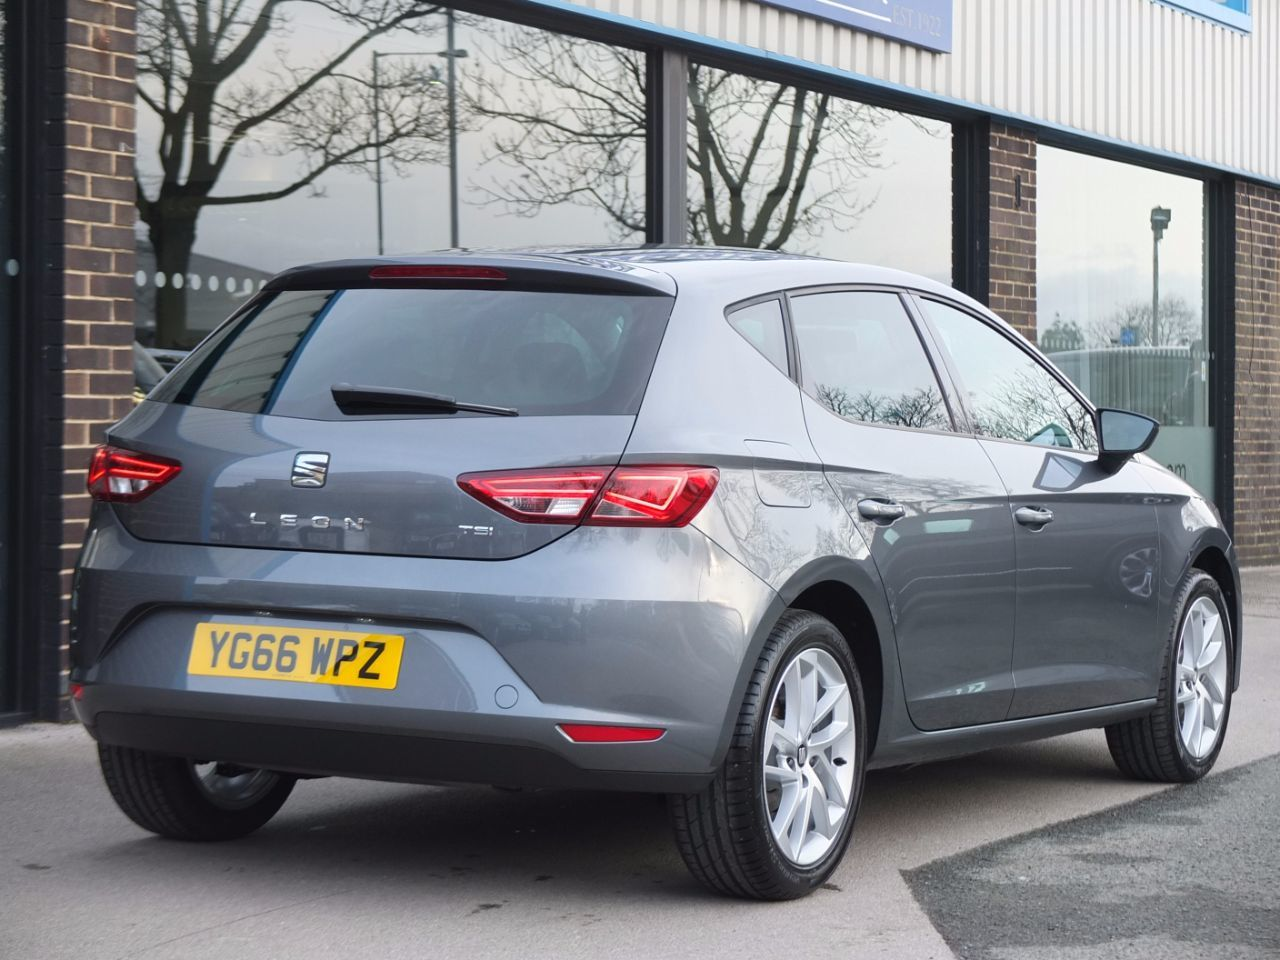 Seat Leon 1.2 TSI SE Dynamic Technology 5dr Hatchback Petrol Monsoon Grey Metallic